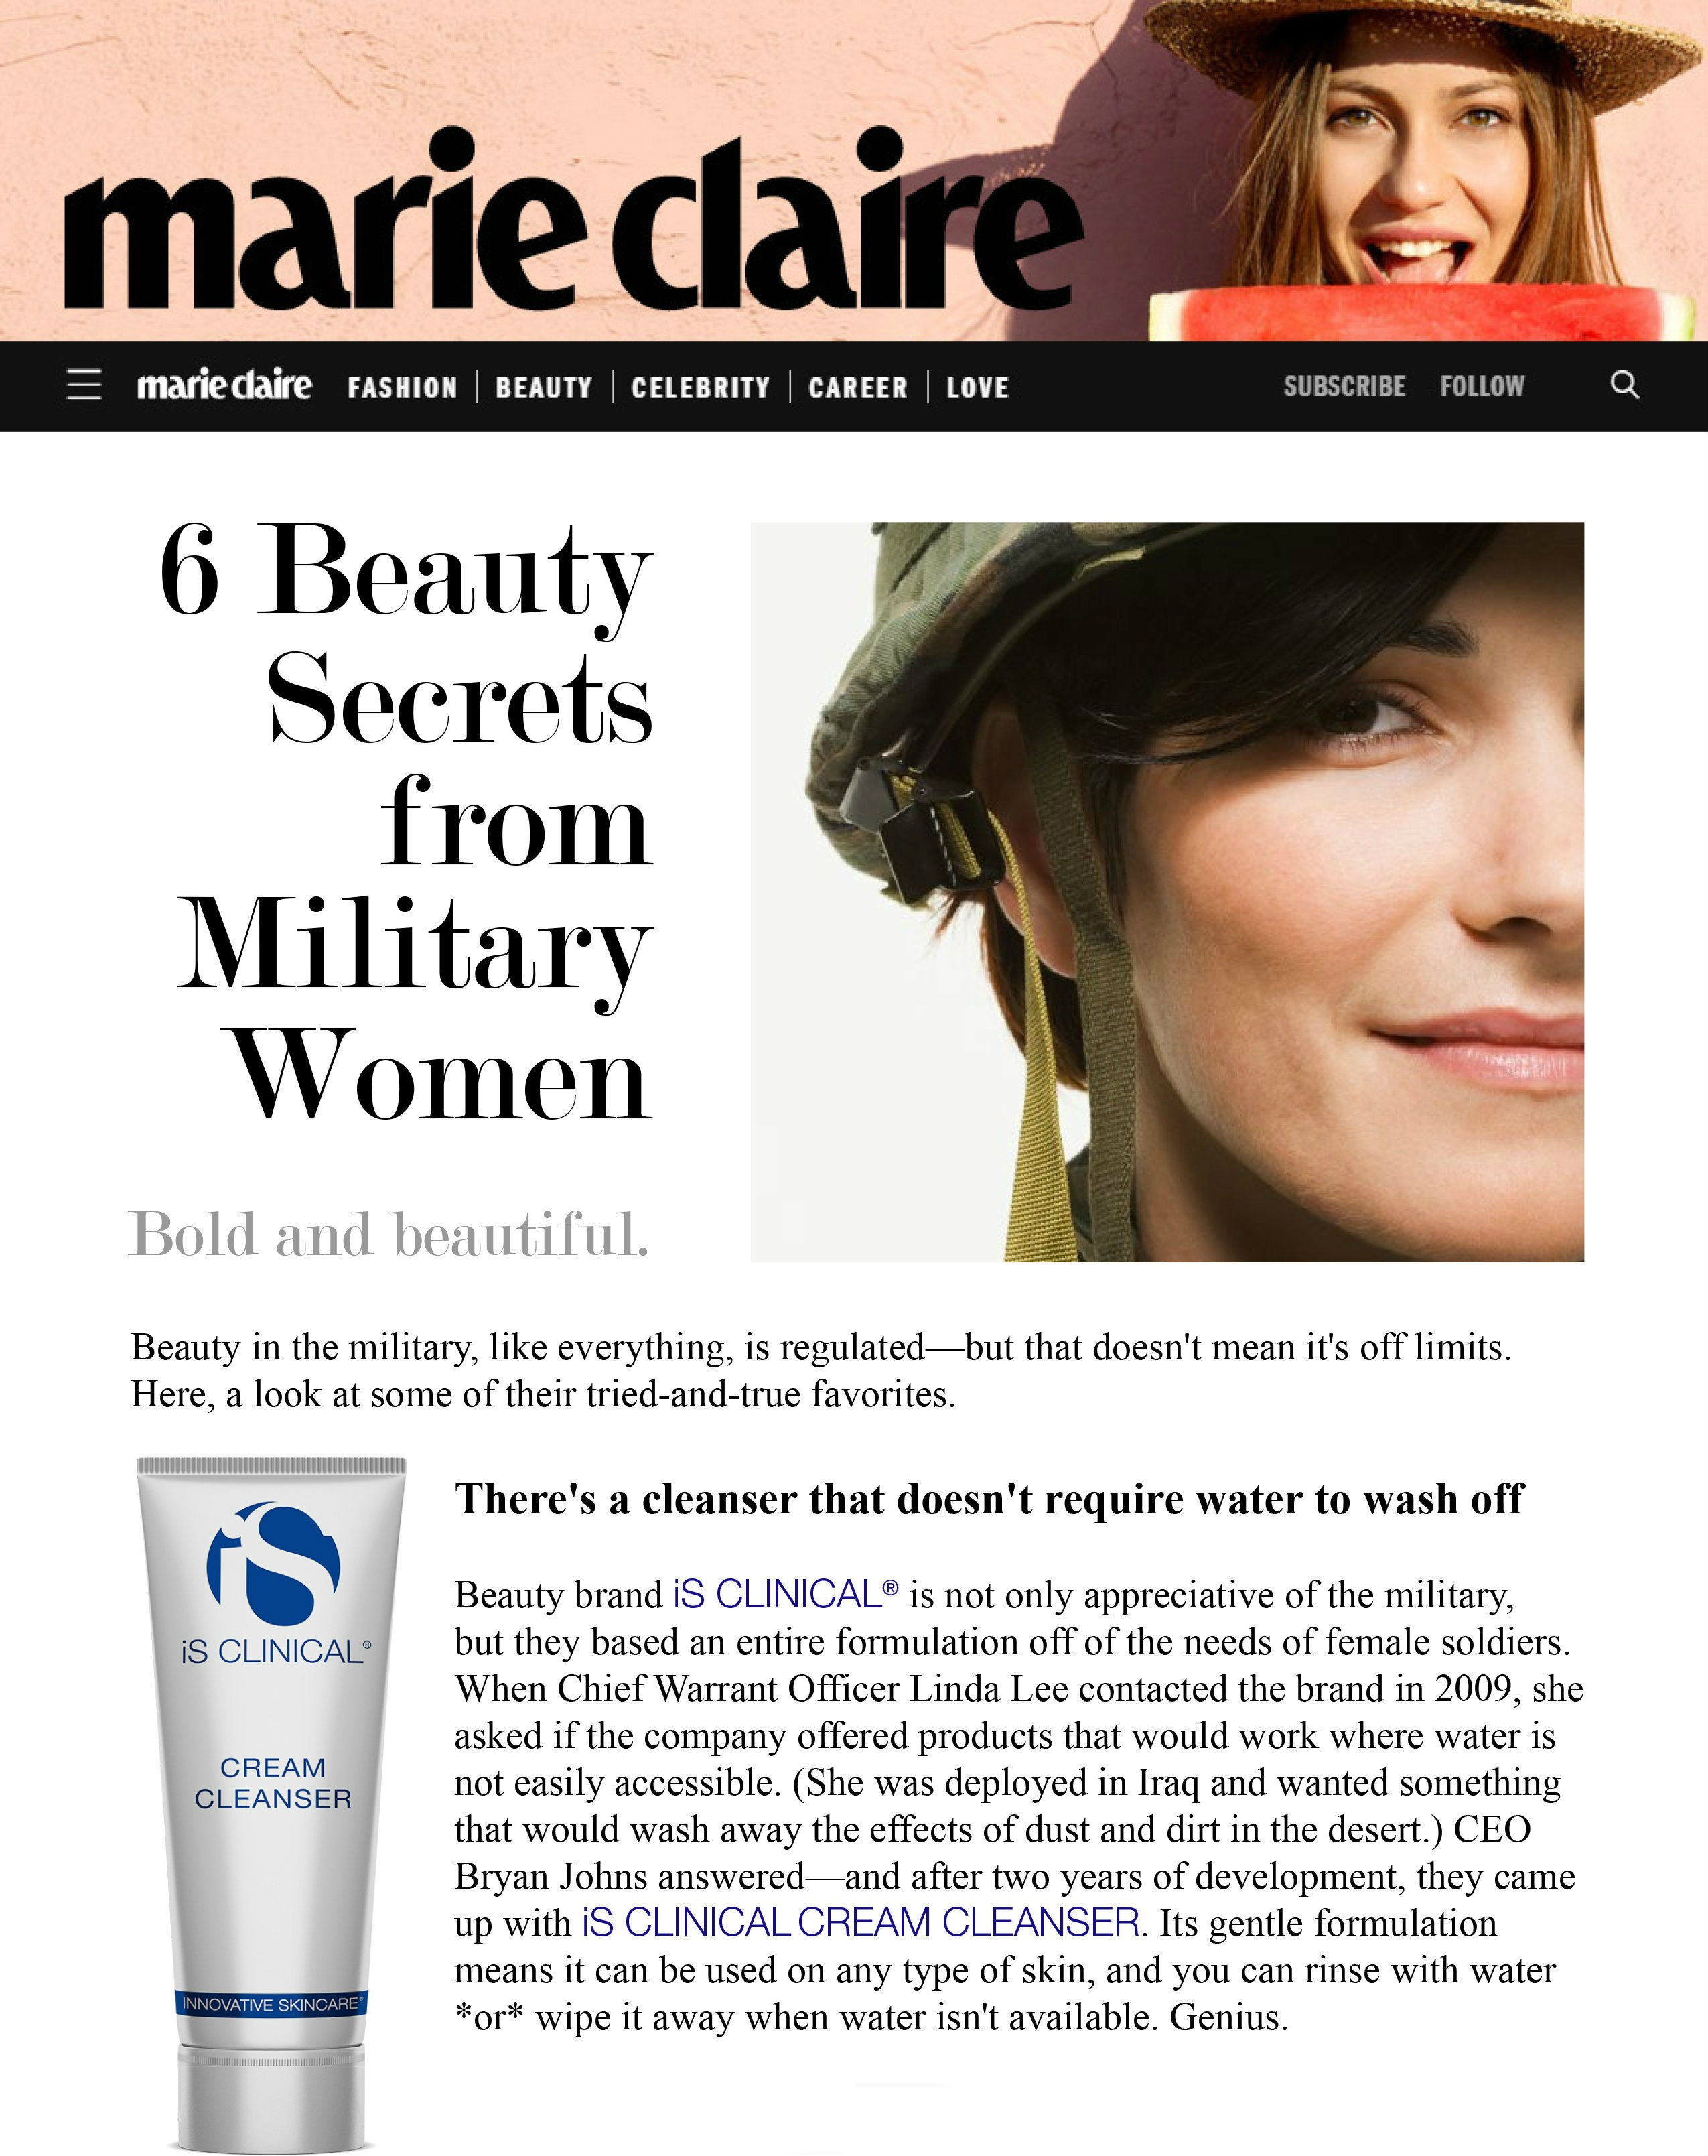 iS Clinical Cream Cleanser Featured in Marie Claire